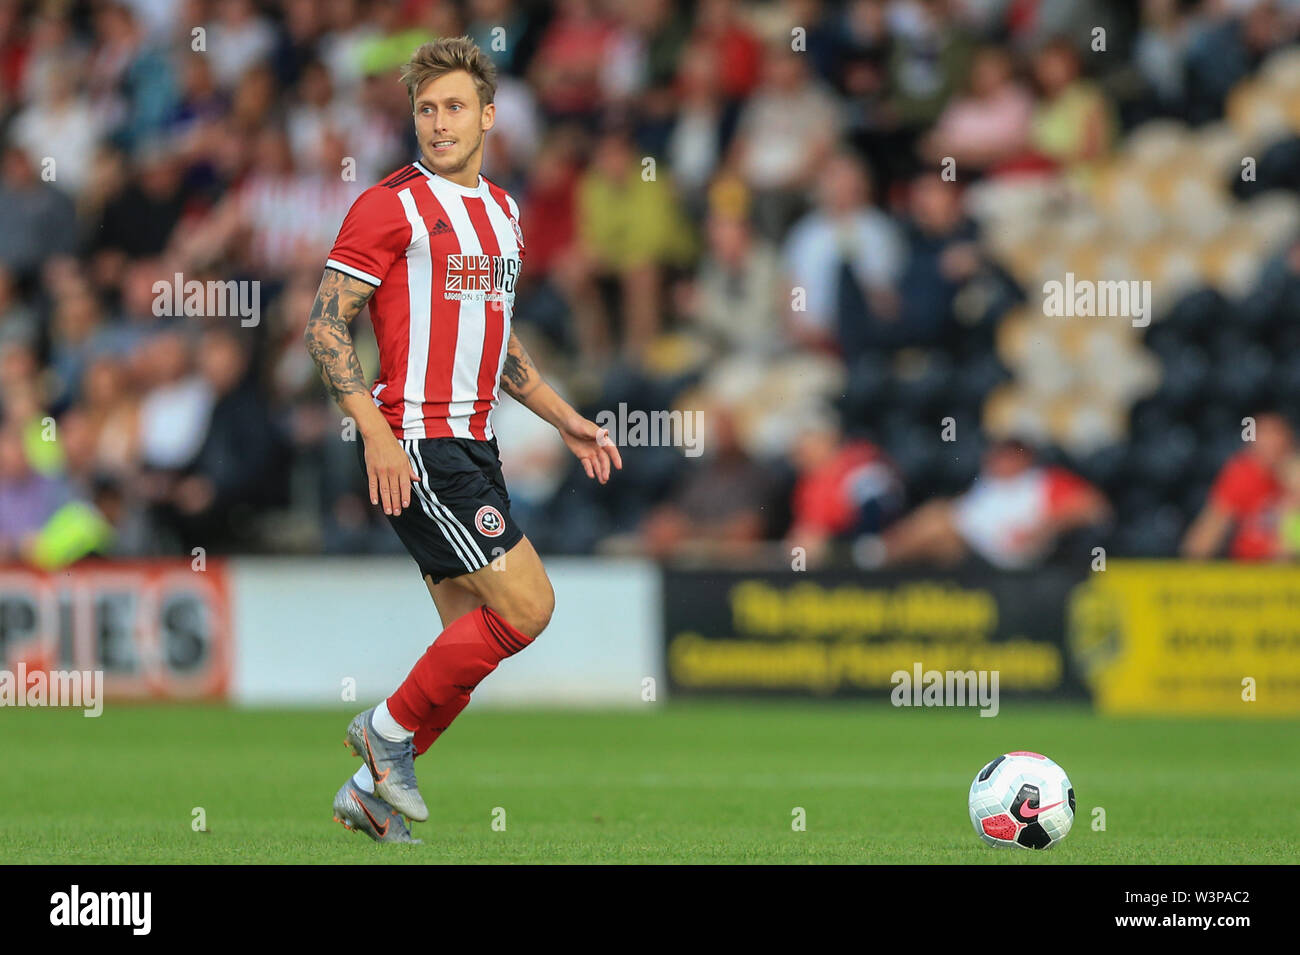 16th July 2019, Pirelli Stadium, Burton upon Trent, England; Pre-Season friendly, Burton Albion vs Sheffield United : Luke Freeman of Sheffield United in action during the game Credit: Mark Cosgrove/News Images  English Football League images are subject to DataCo Licence - Stock Image